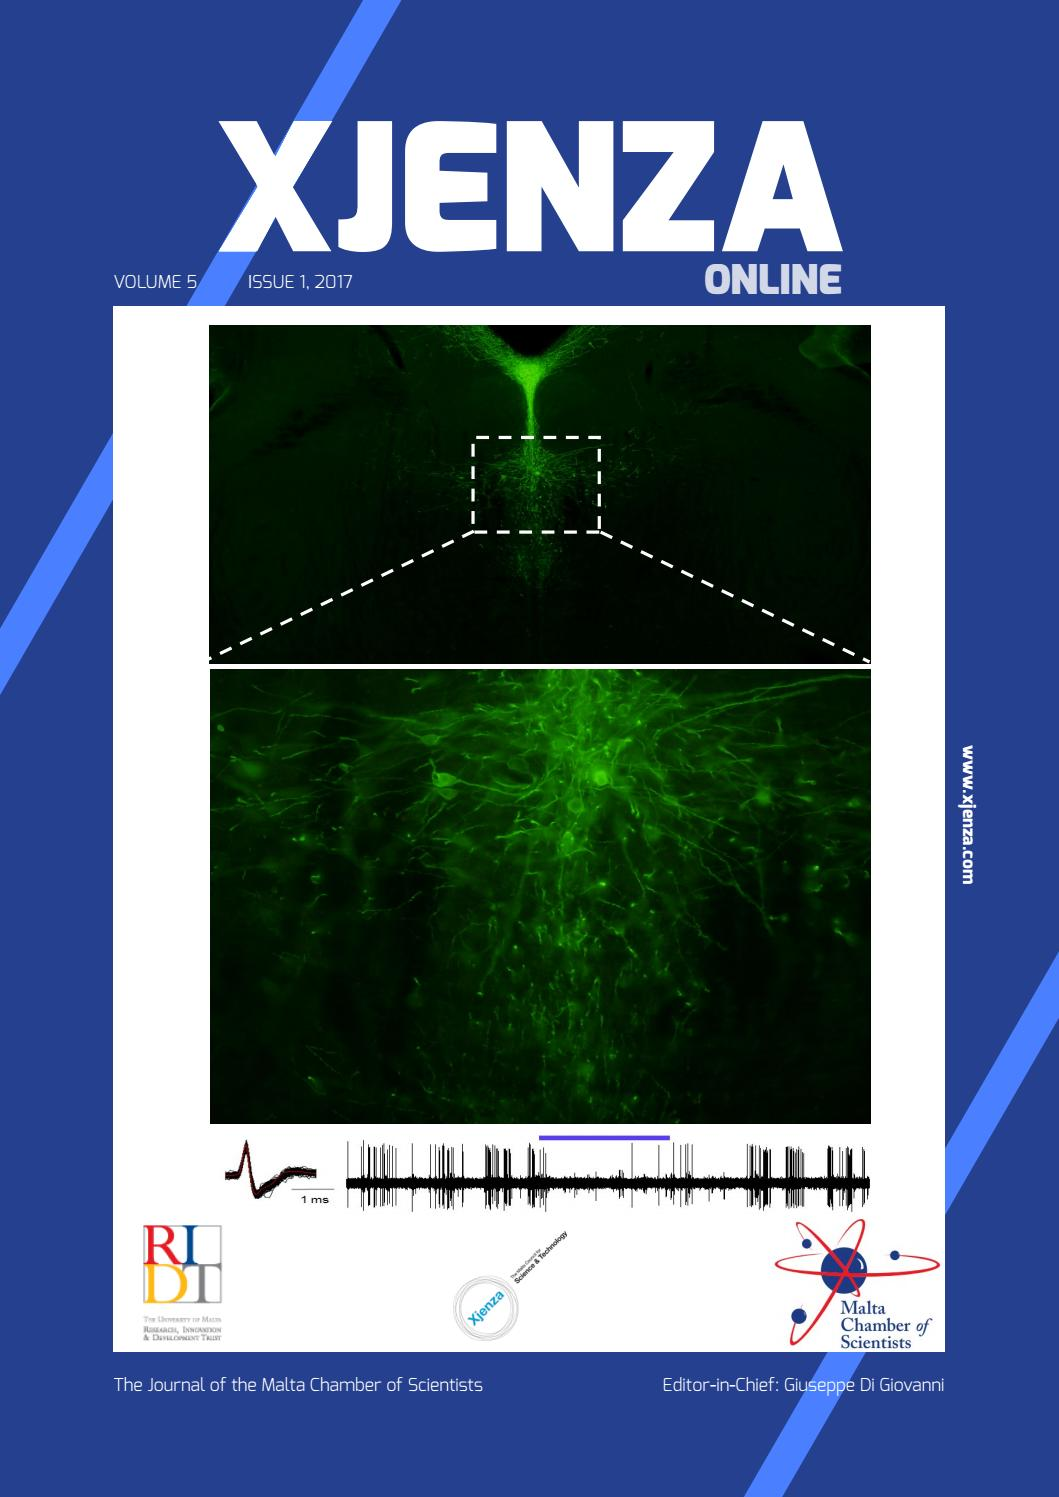 Xjenza Online New Series Vol 5 Iss 1 2017 By Malta Chamber Of Original File Svg Nominally 573 X 444 Pixels Size Scientists Issuu